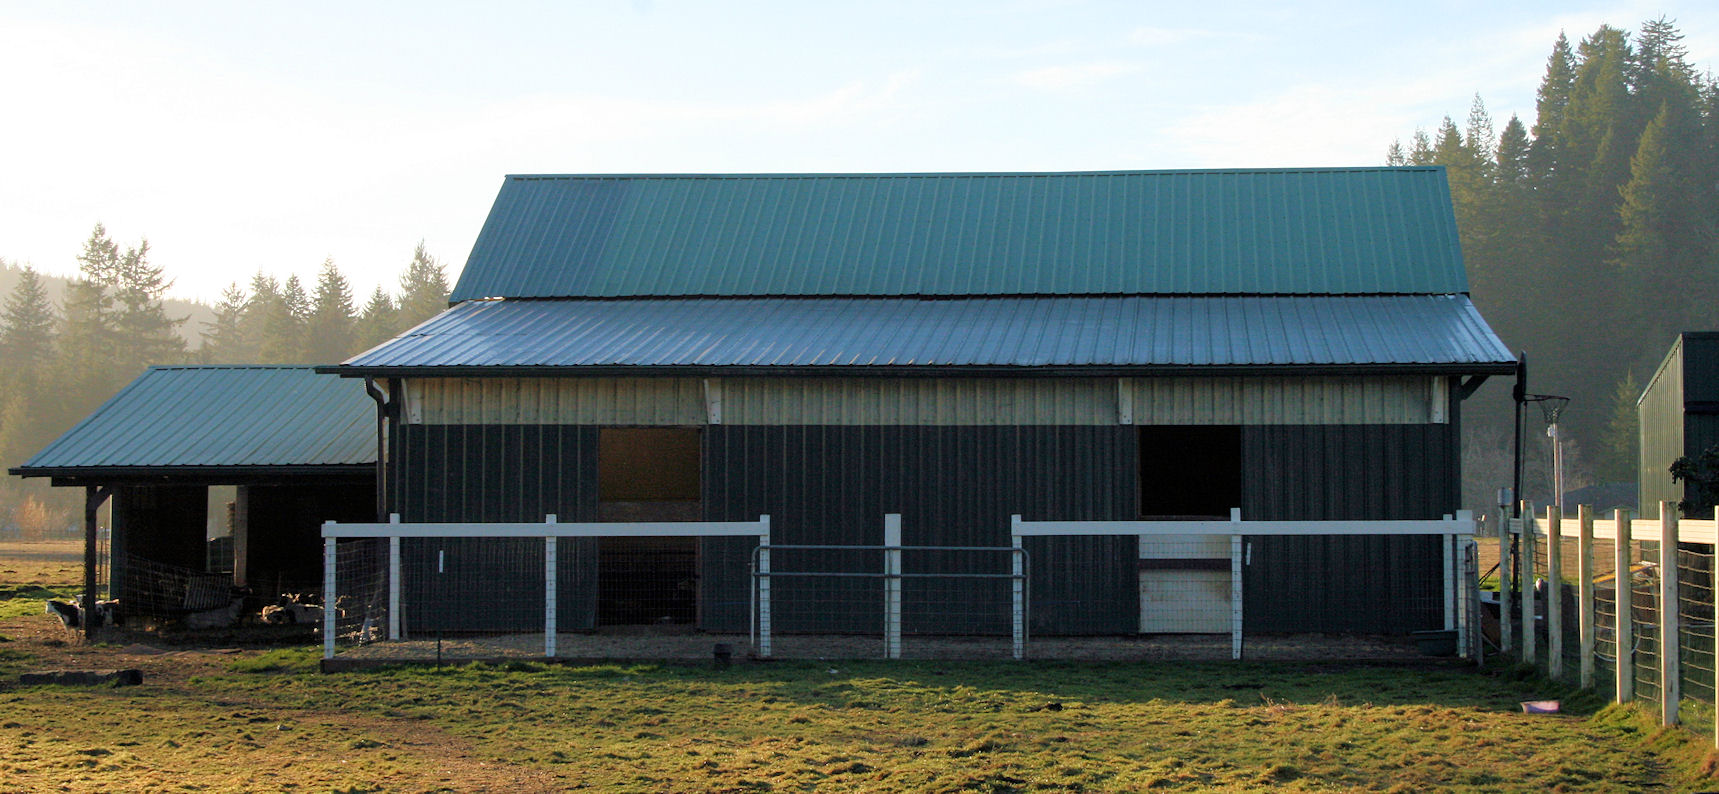 east-addition-of-barn